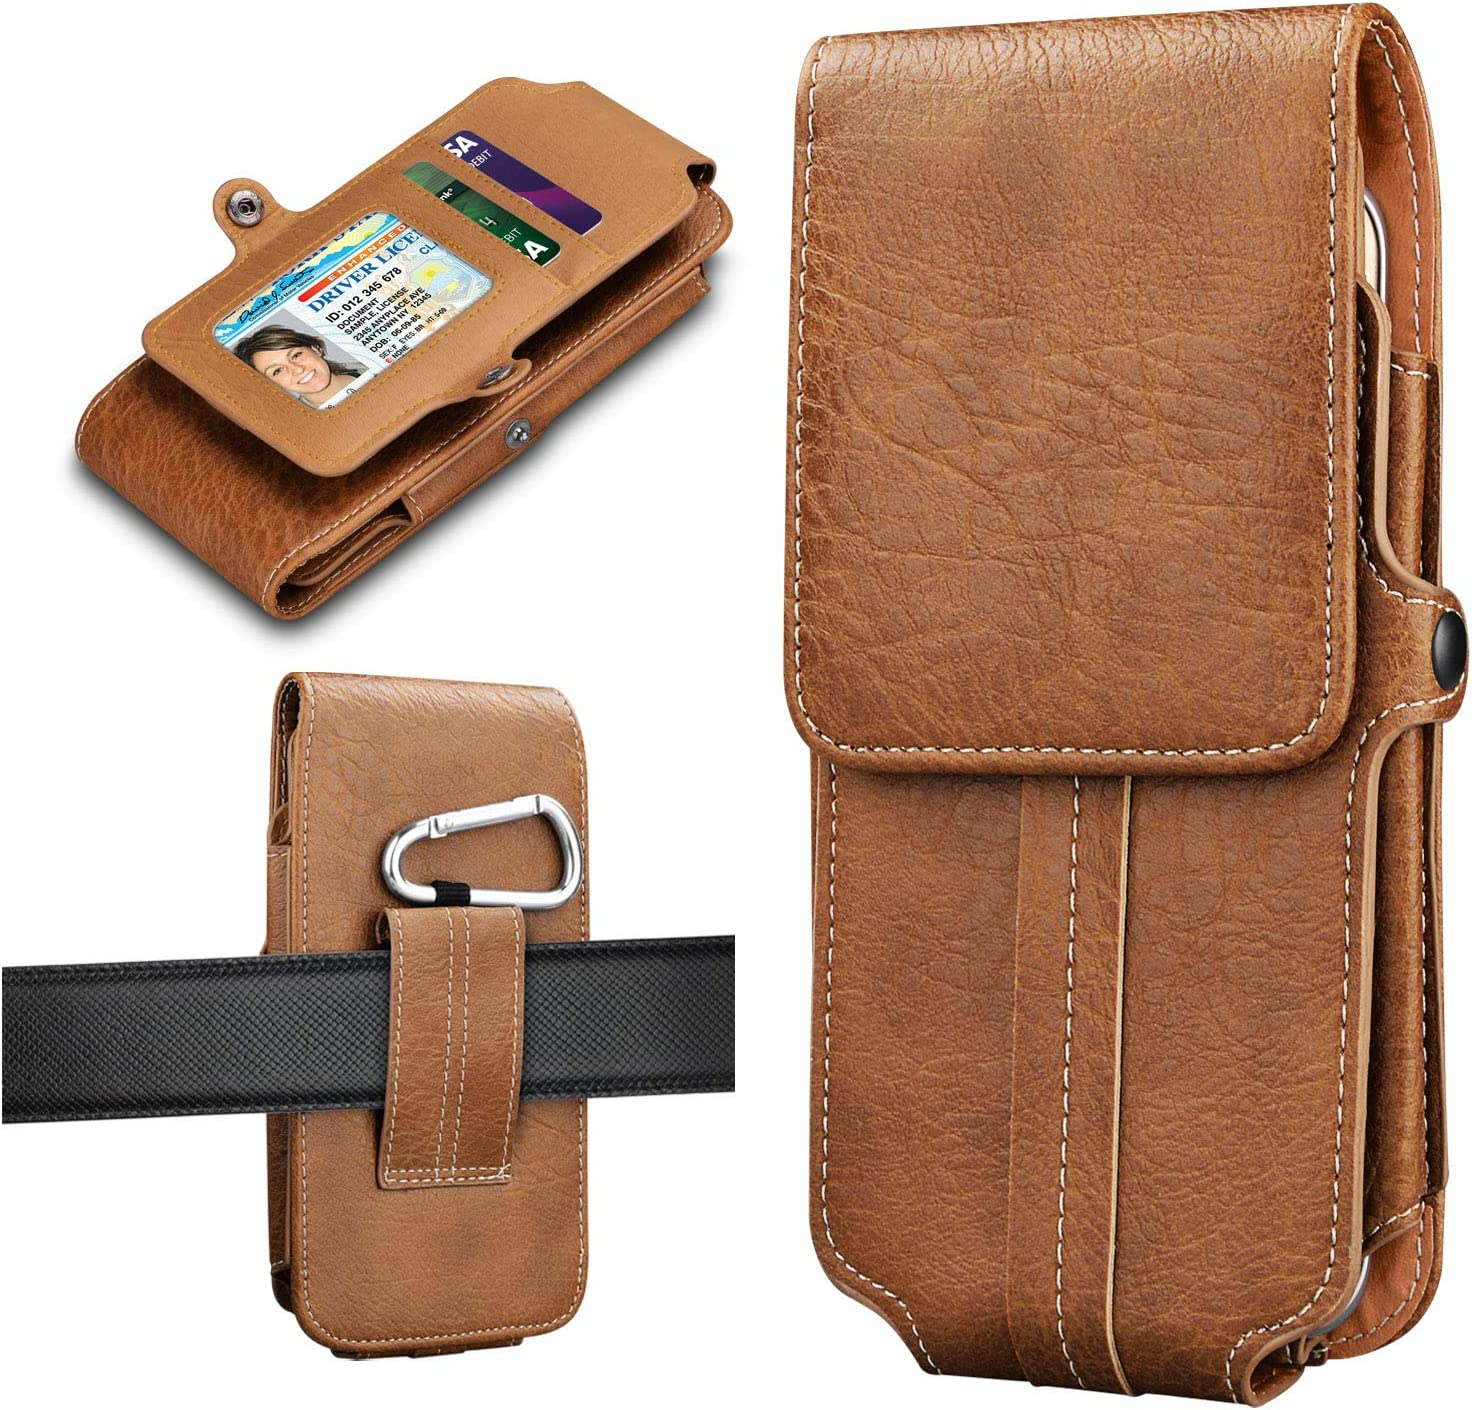 Tiflook Compatible with iPhone 11 Pro Max XS XR X 8+ 7+ Samsung Galaxy Note 20 Note 10 S20 S10e S10 S9 S8 A71 A51 A01 A10e A20 A50 J7 PU Leather Phone Holster Belt Holder Carrying Case Pouch, Brown